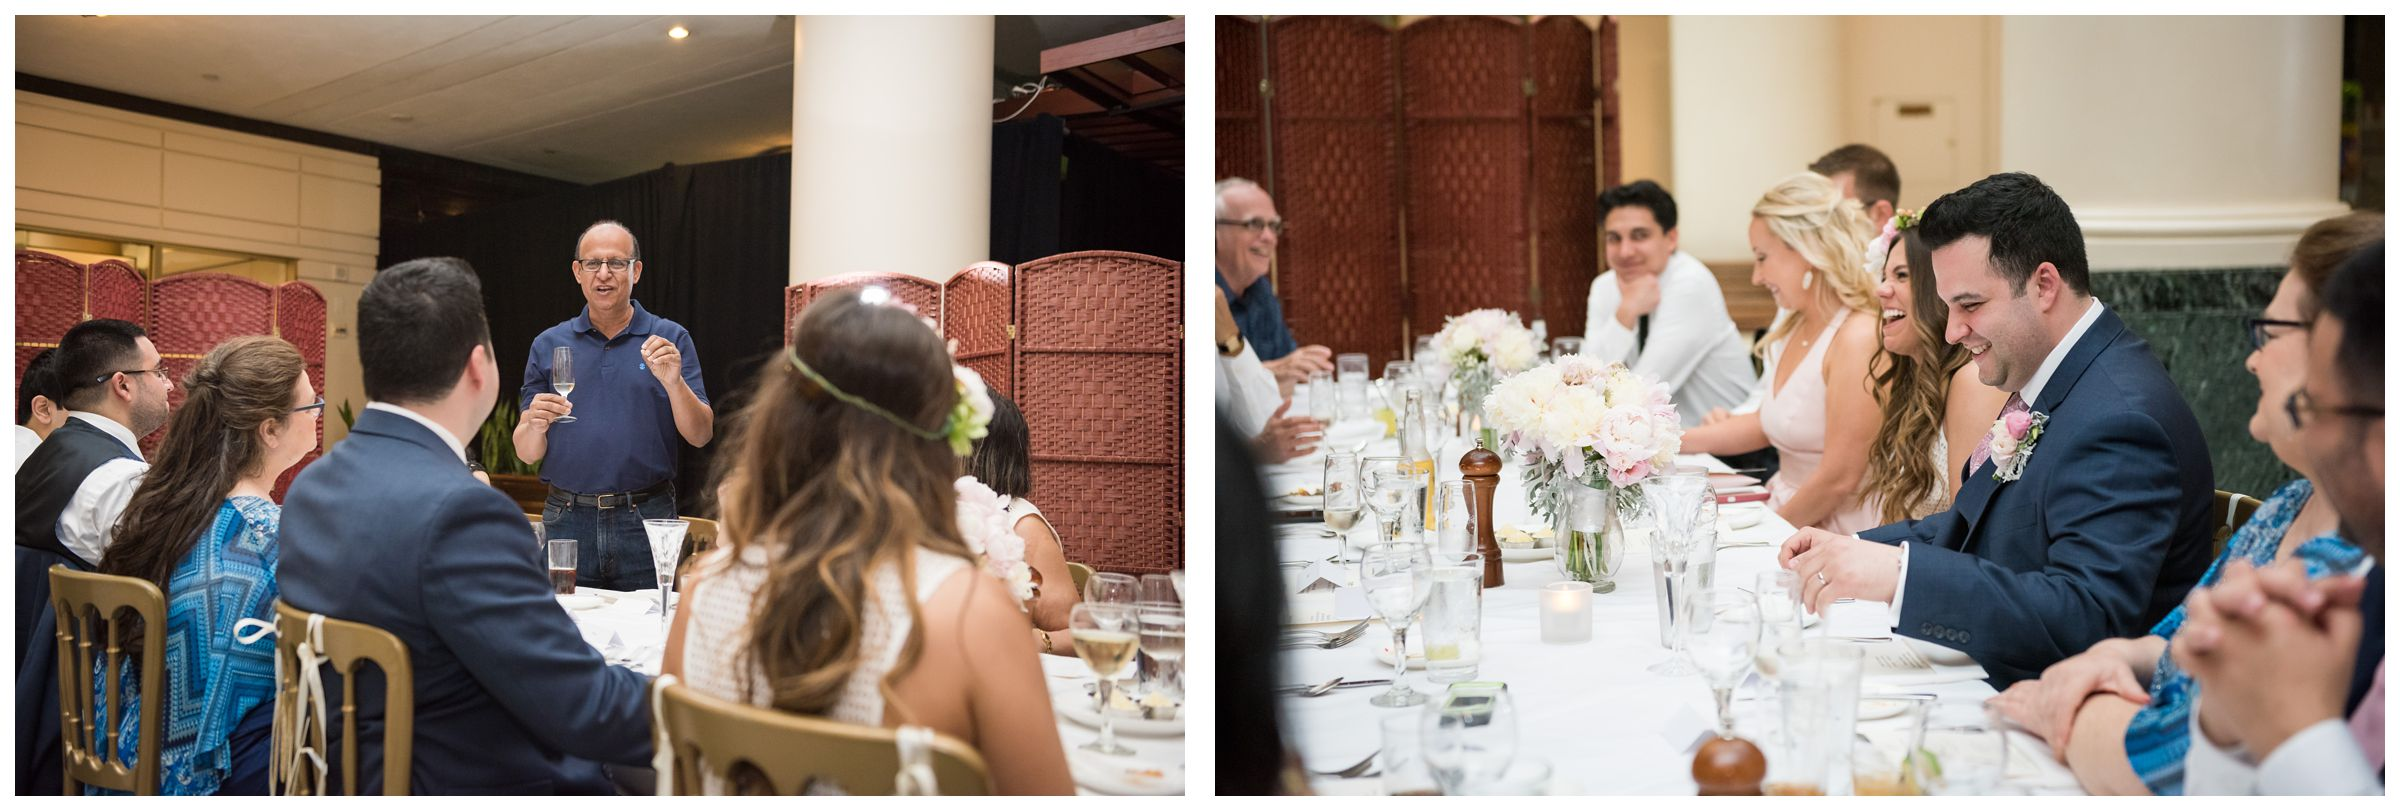 father of the groom giving toast during intimate wedding reception dinner at Old Ebbitt Grill in Washington, D.C.